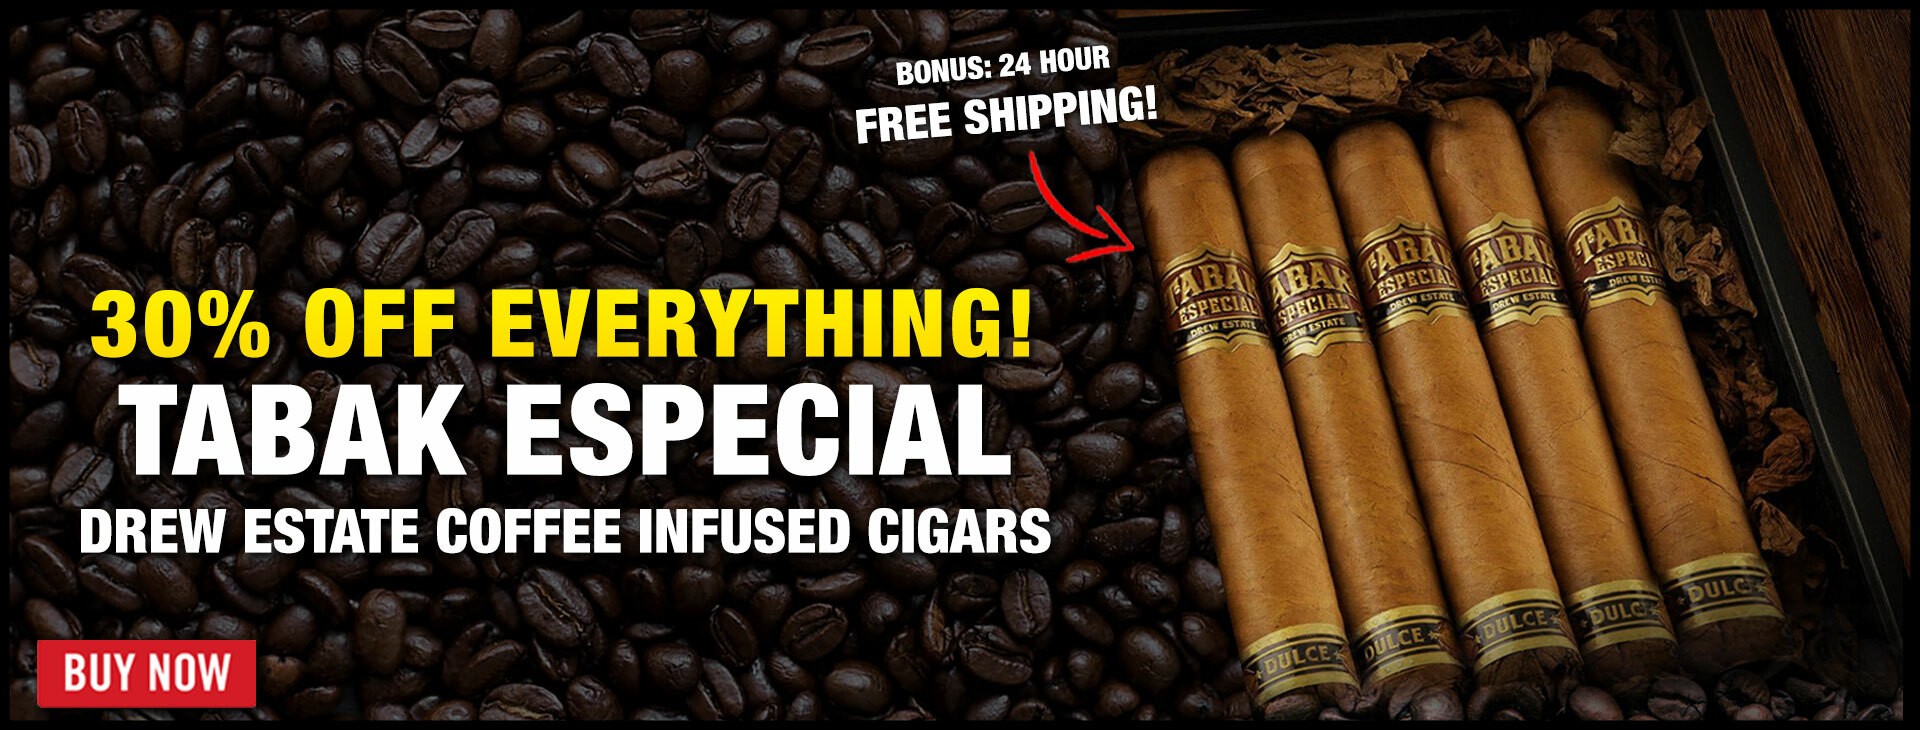 30% OFF Tabak Especial By Drew Estate